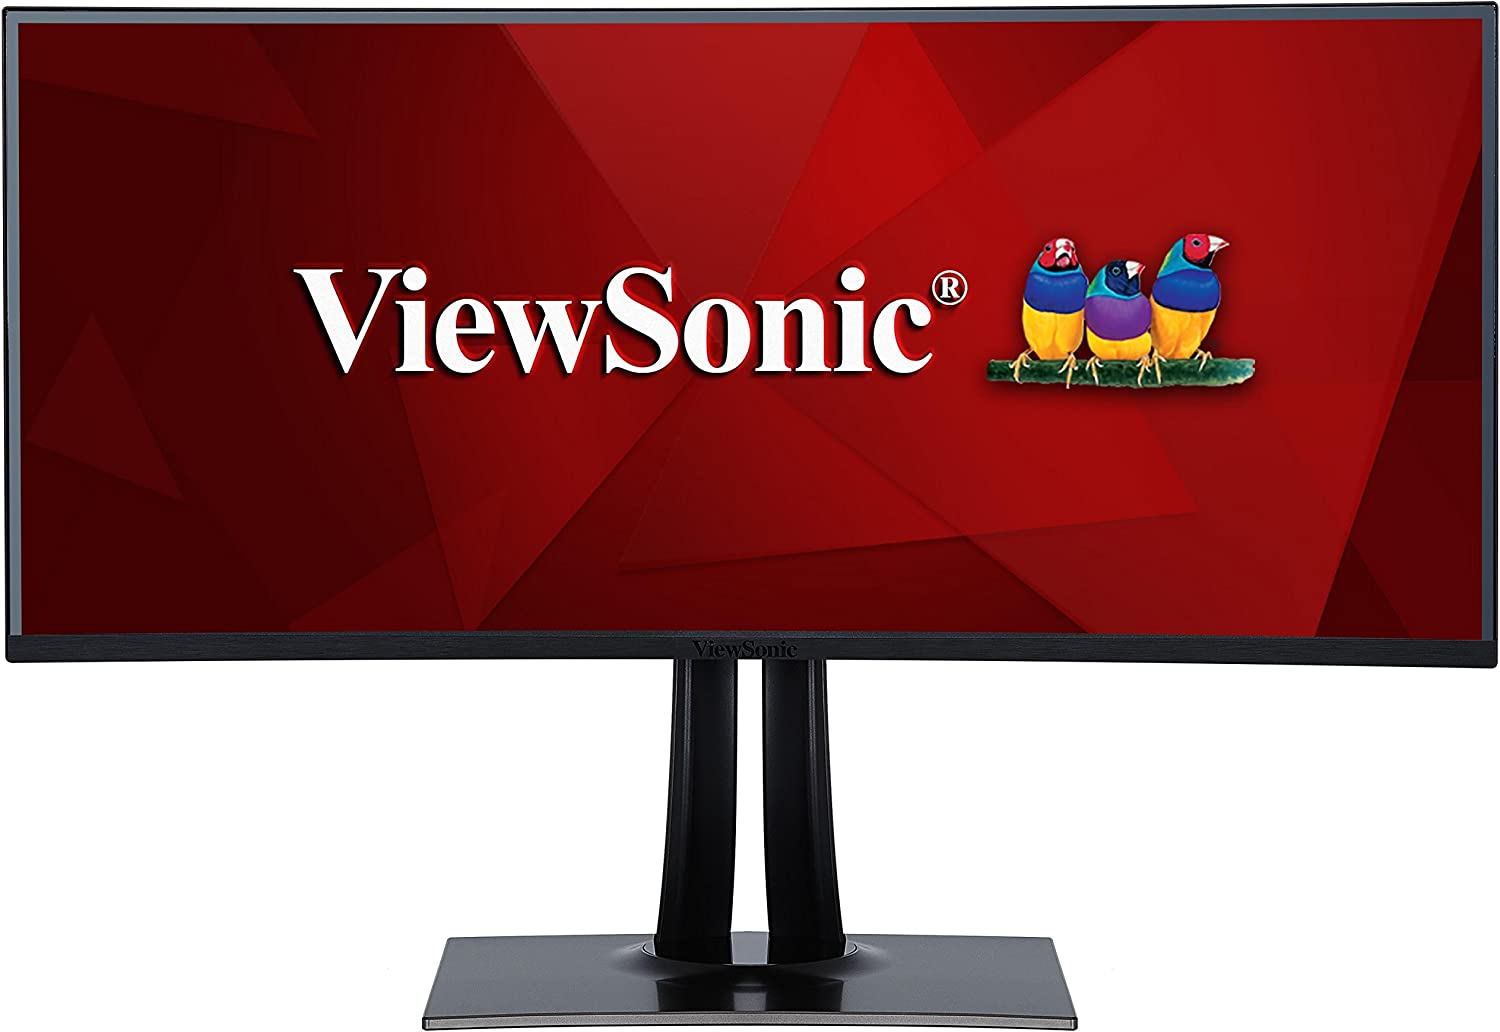 "ViewSonic VP3881 38"" UltraWide Curved Monitor Review"